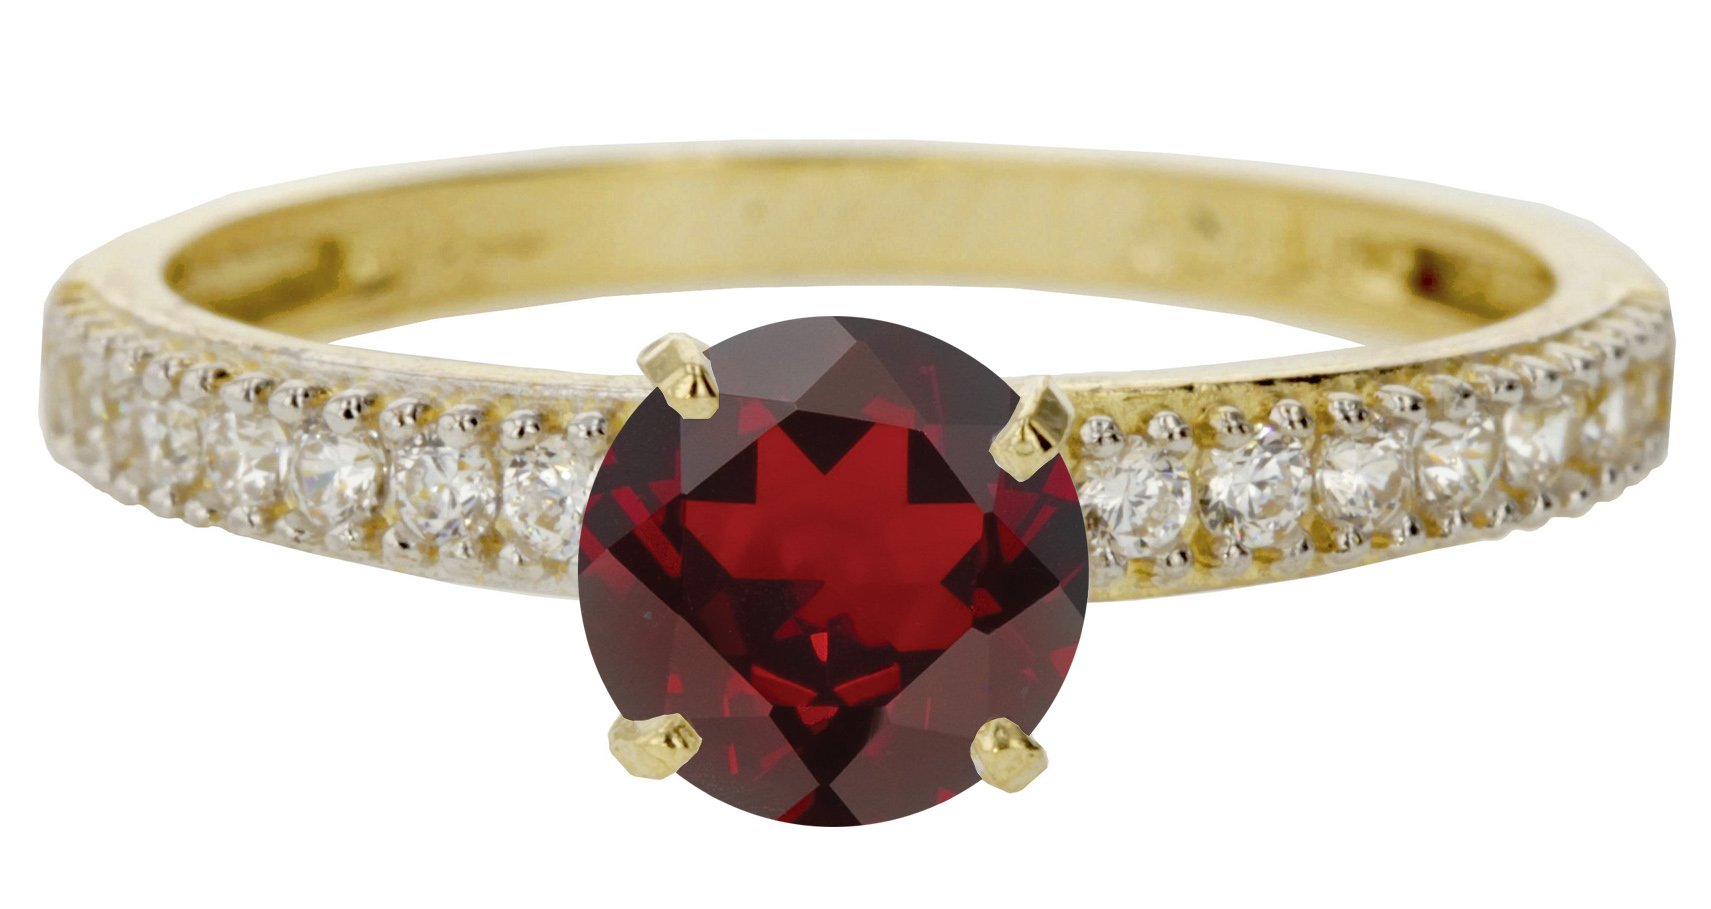 14k Yellow Gold Faceted Natural Genuine Red Garnet Round Engagement Band Wedding Ring Size 8.5